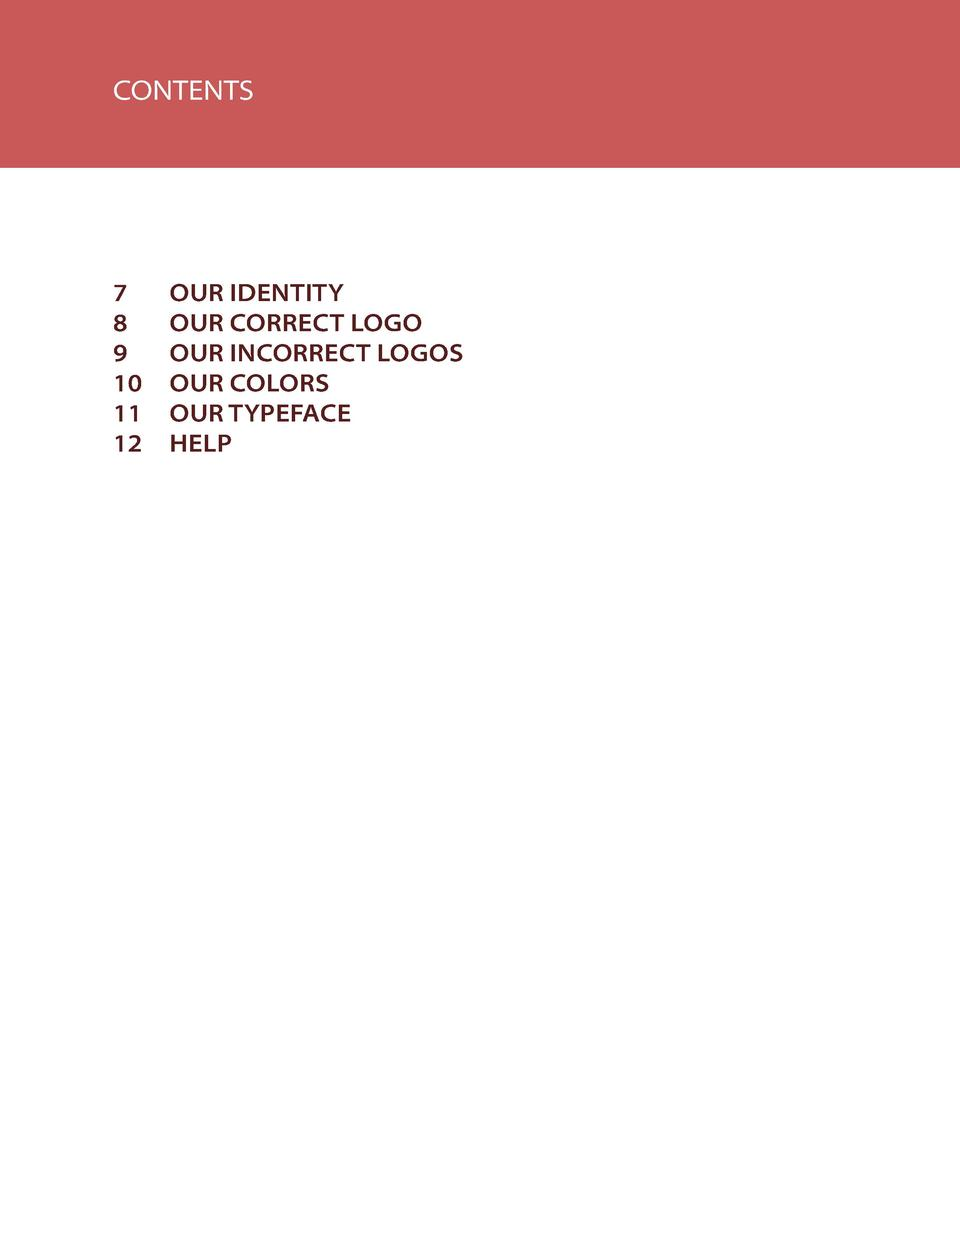 CONTENTS  7   OUR IDENTITY 8  OUR CORRECT LOGO 9  OUR INCORRECT LOGOS 10   OUR COLORS 11  OUR TYPEFACE 12 HELP  3